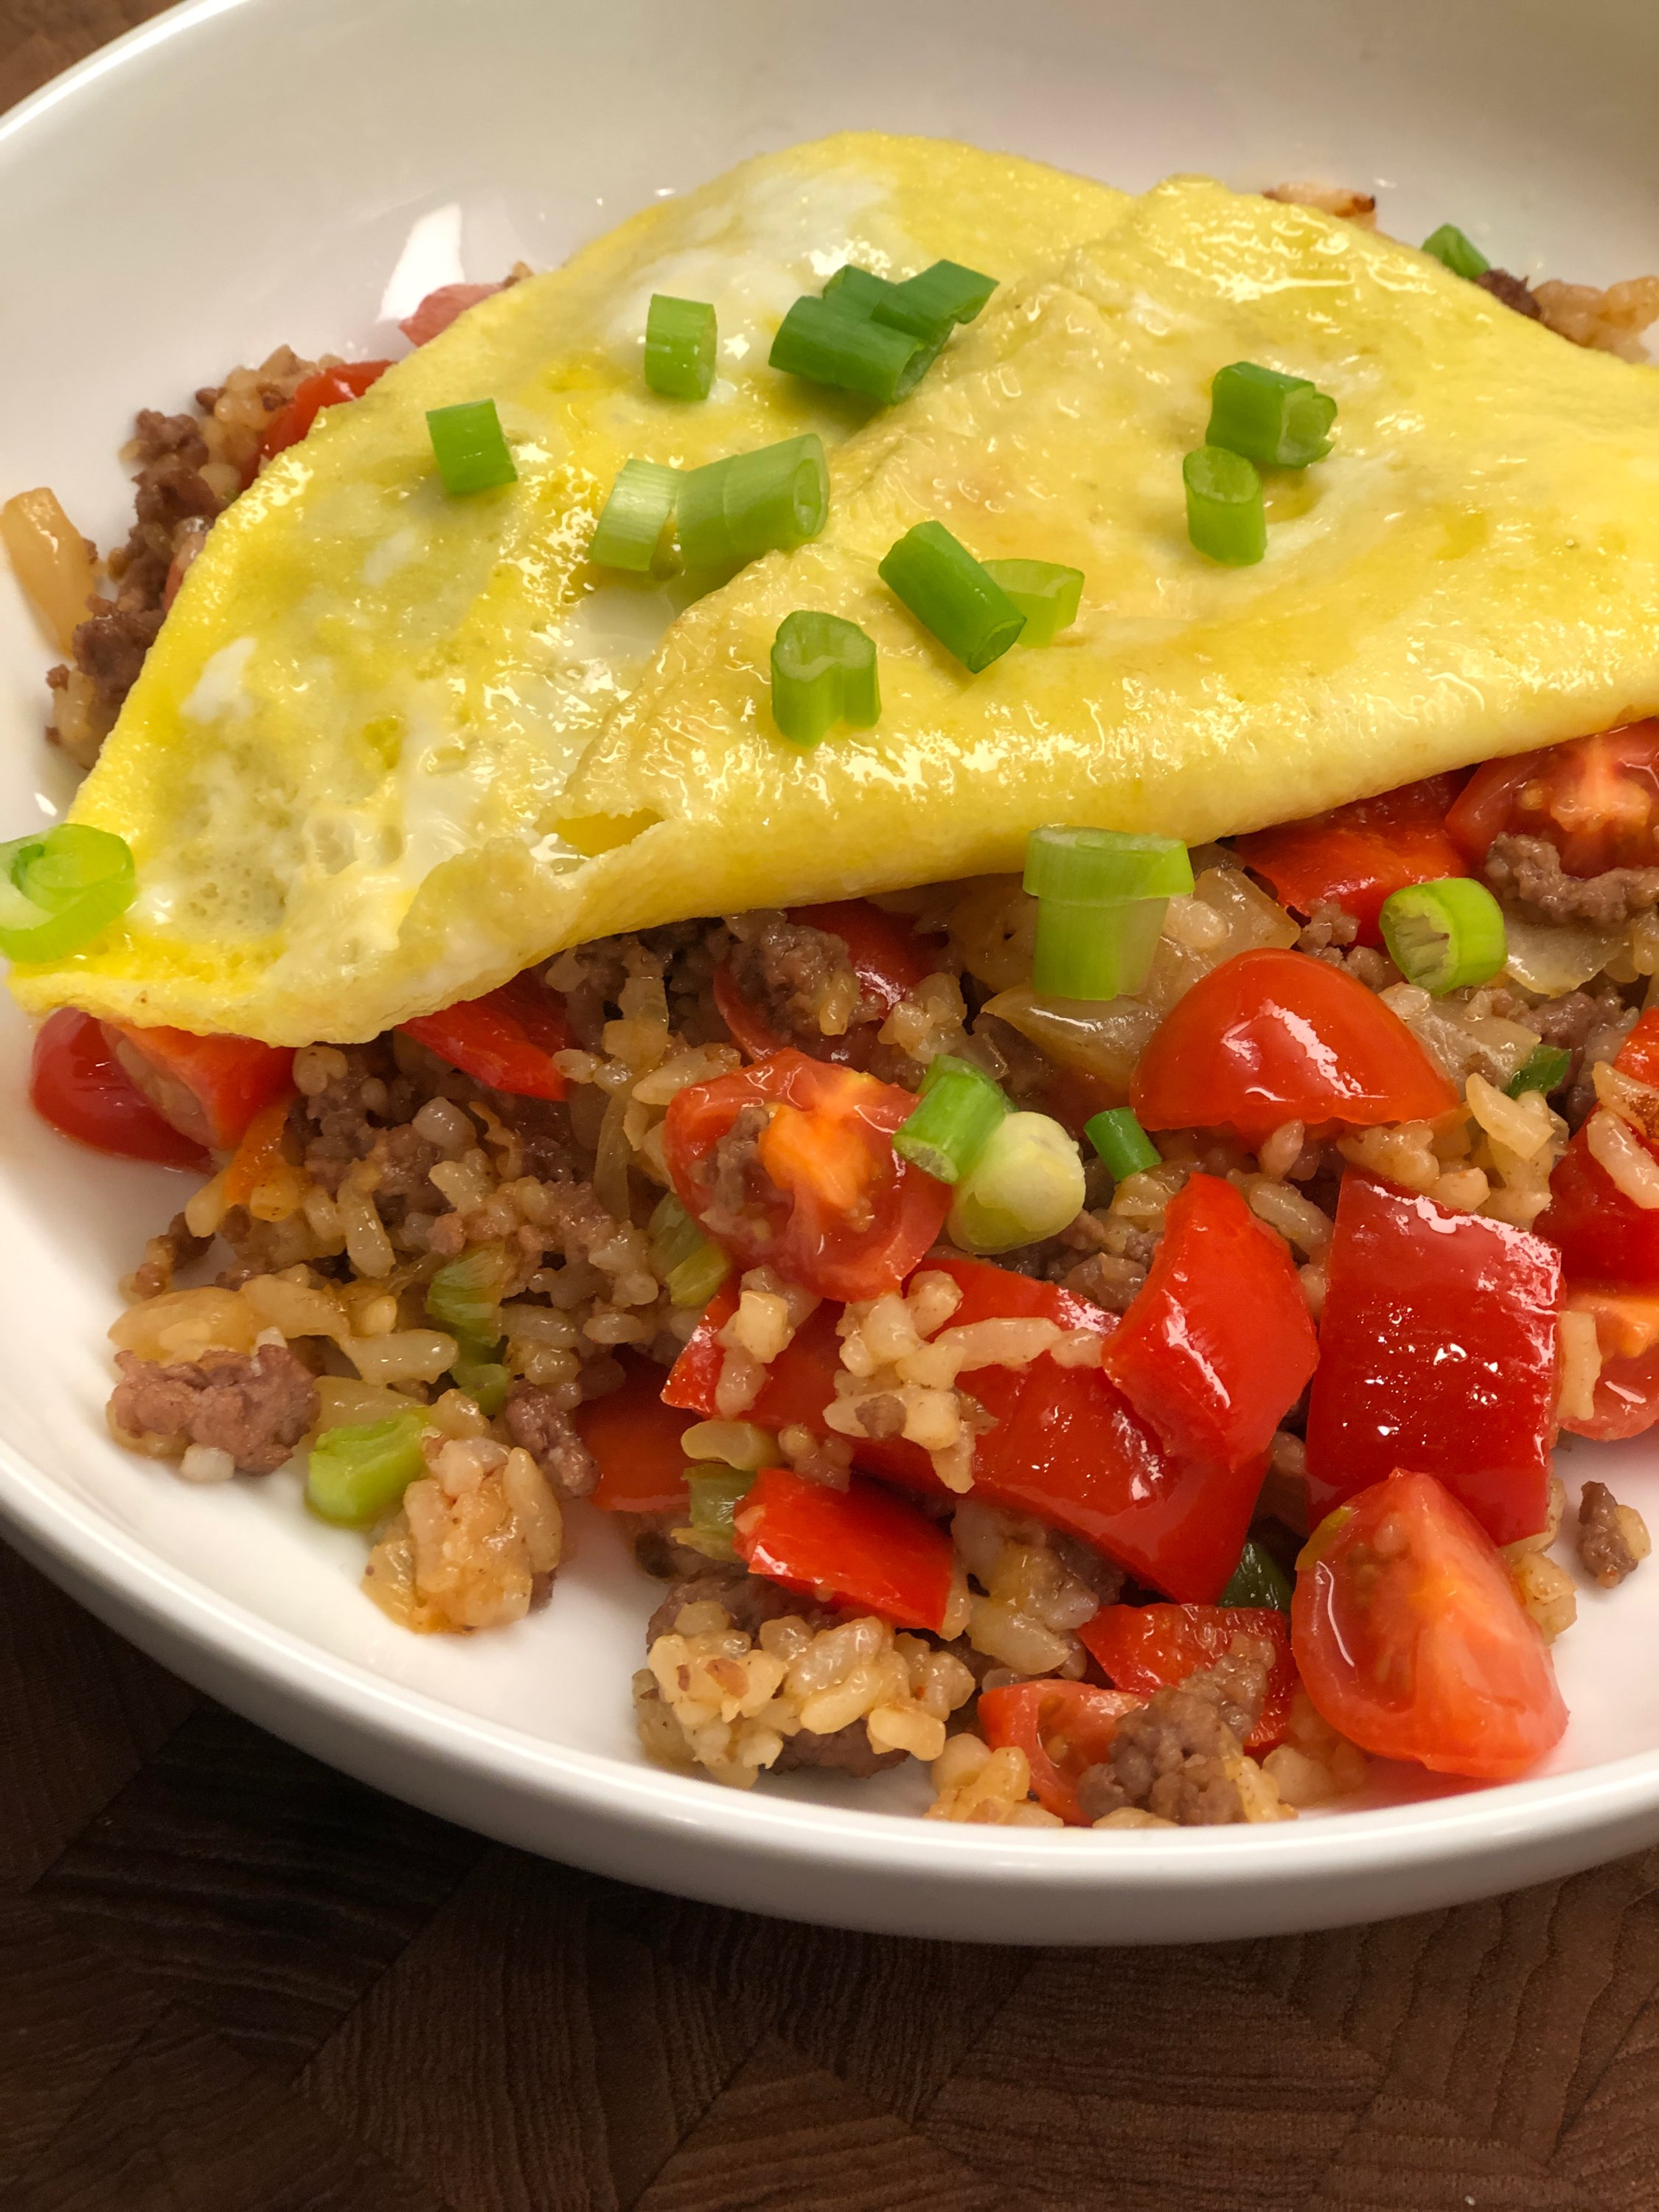 """This fried rice is made with ground beef, and is Thai home cooking at its best!"" says Diana71. ""Enjoy the delicious flavor that the soy sauce, fish sauce, and fresh tomato bring to this version of fried rice."""